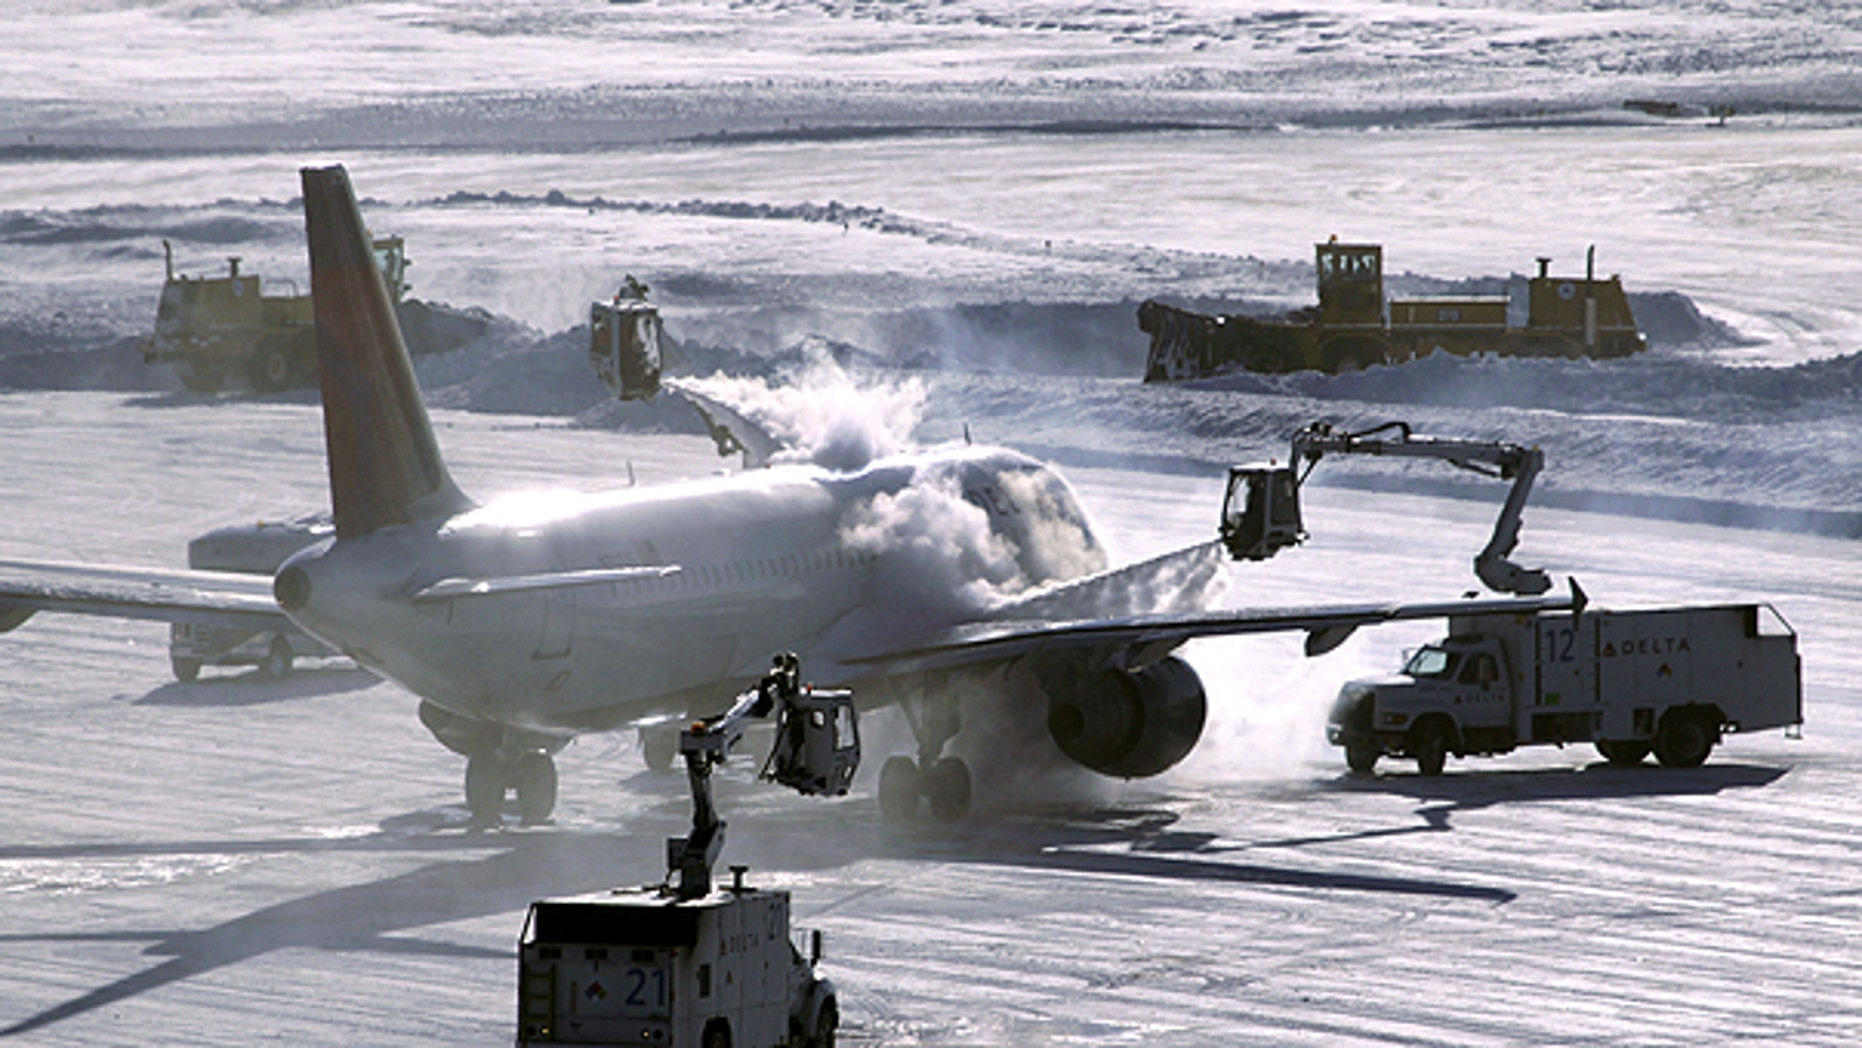 Dec. 12: A plane is de-iced before take-off while snowplows clear the runway at Minneapolis-St. Paul International Airport in Minneapolis.